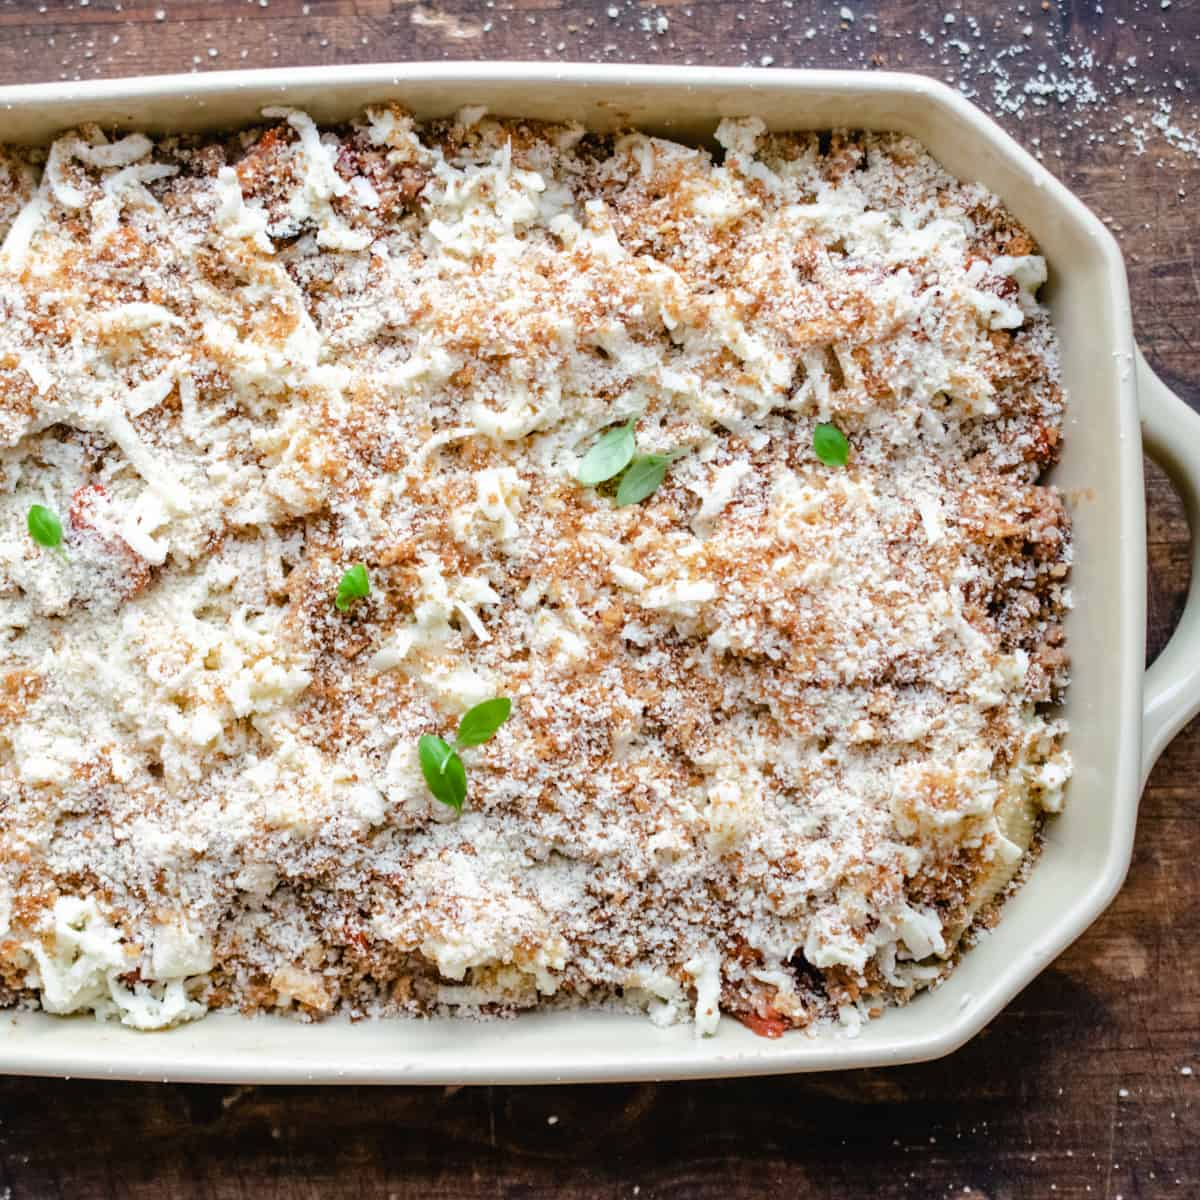 Stuffed pasta shells with mozzarella, bread crumbs and basil leaves on top.